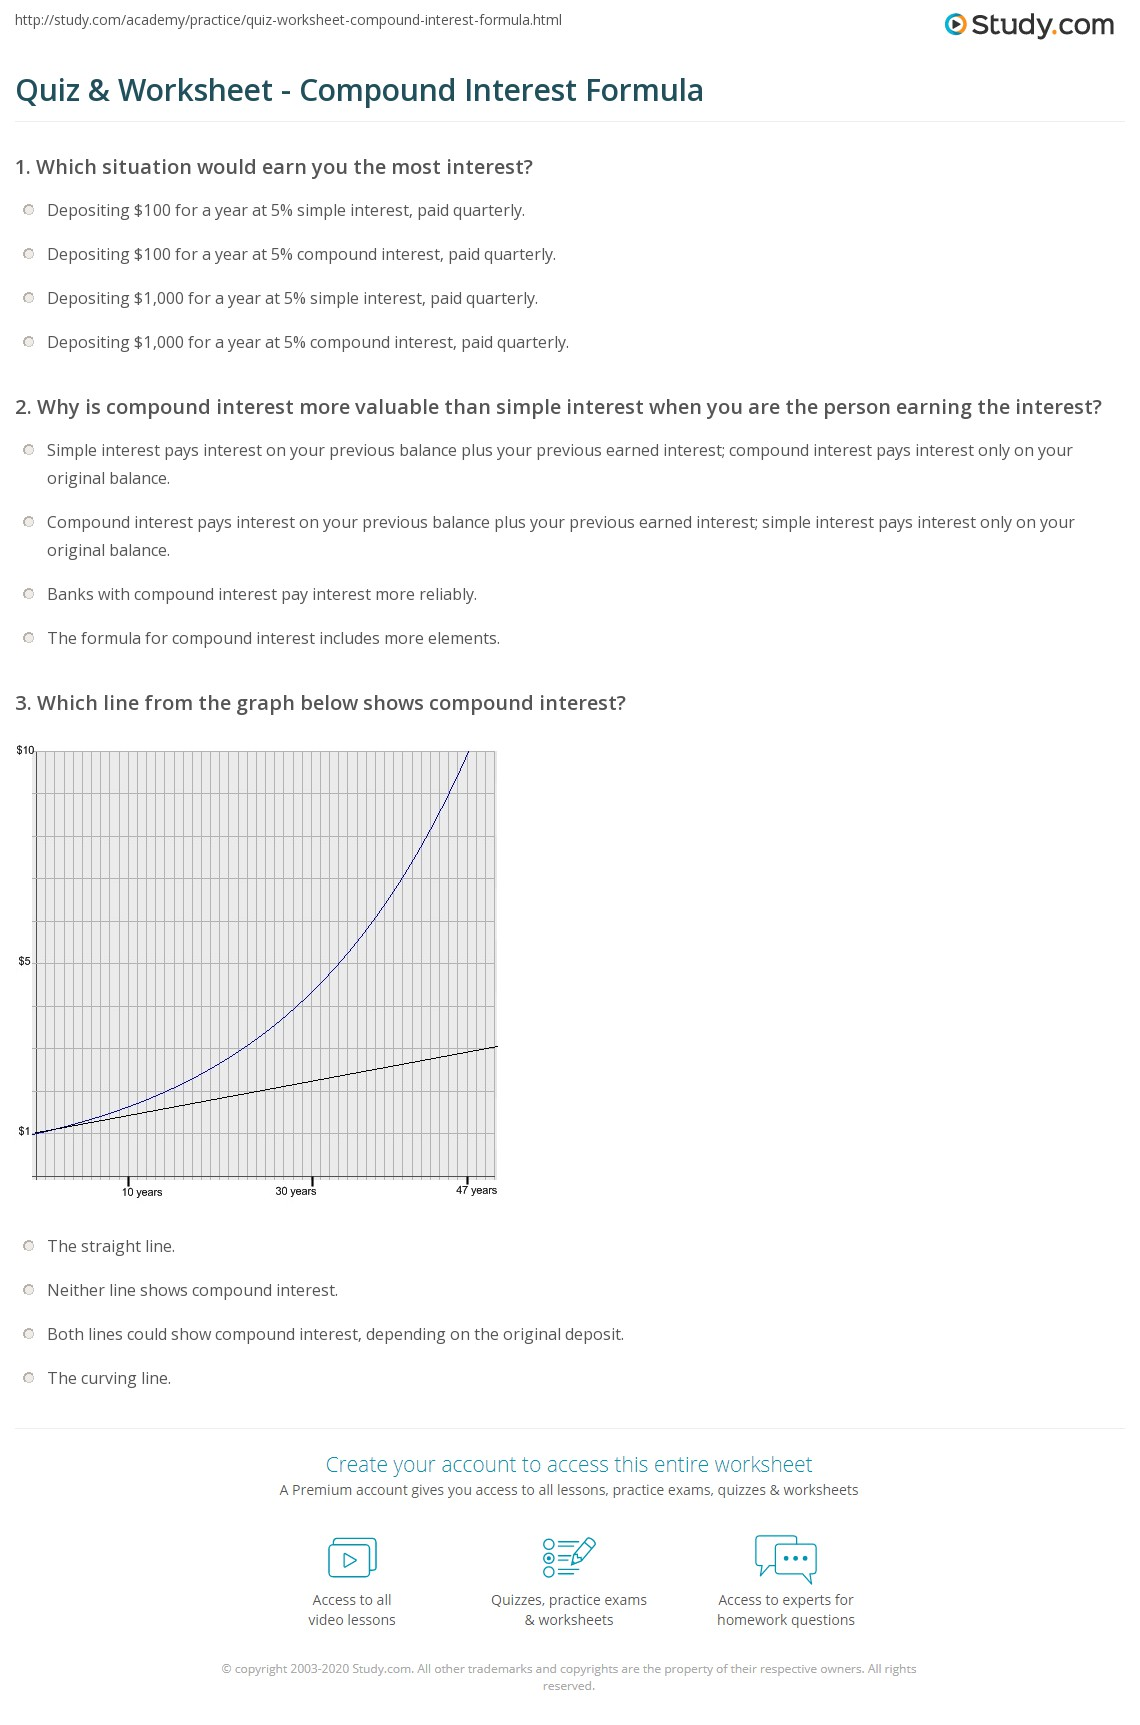 Quiz Worksheet Compound Interest Formula – Simple and Compound Interest Worksheet